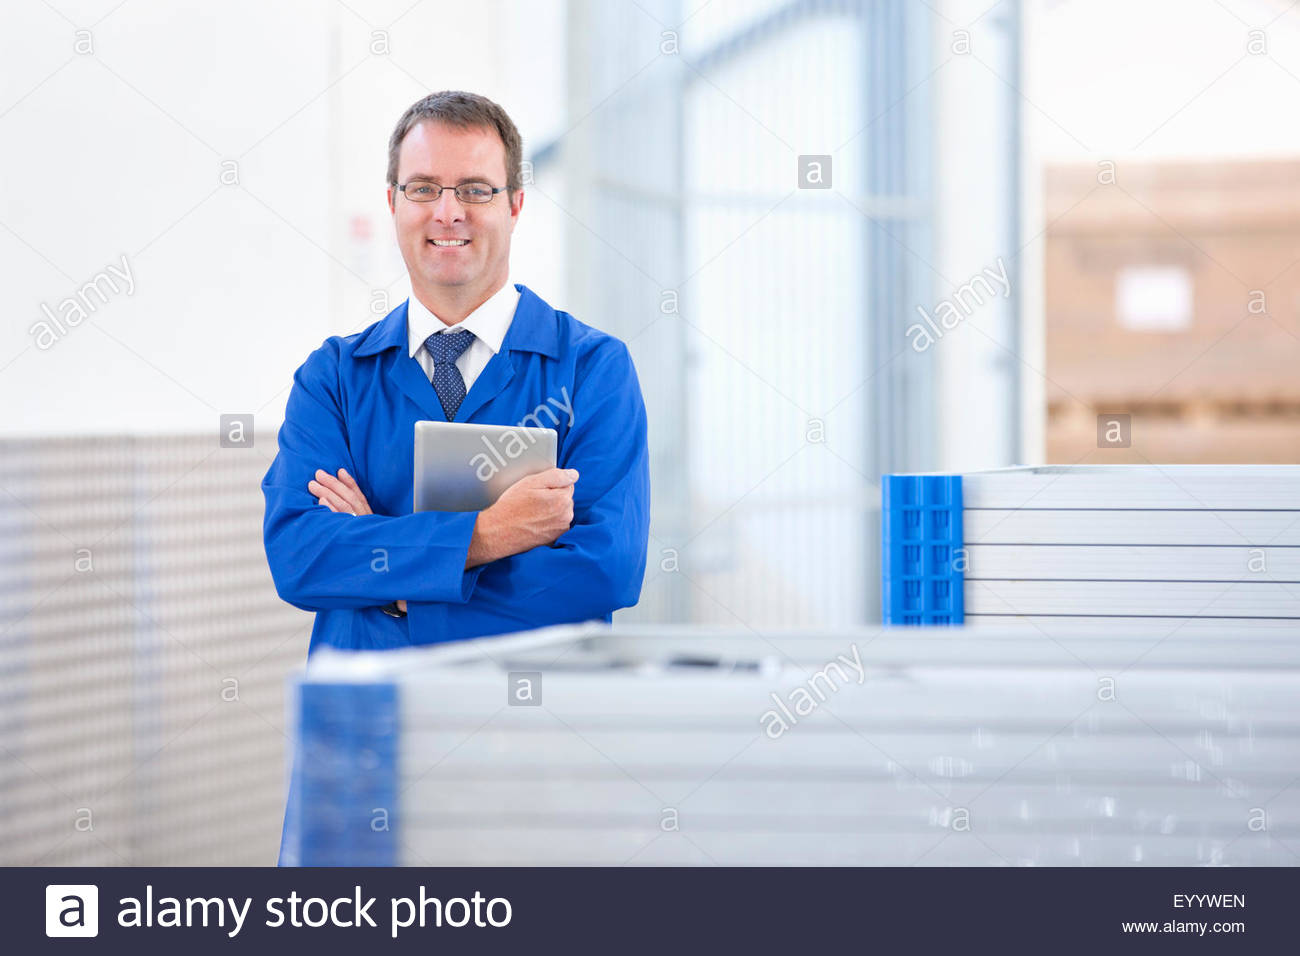 Supervisor worker smiling at camera stock checking solar panels in factory warehouse - Stock Image